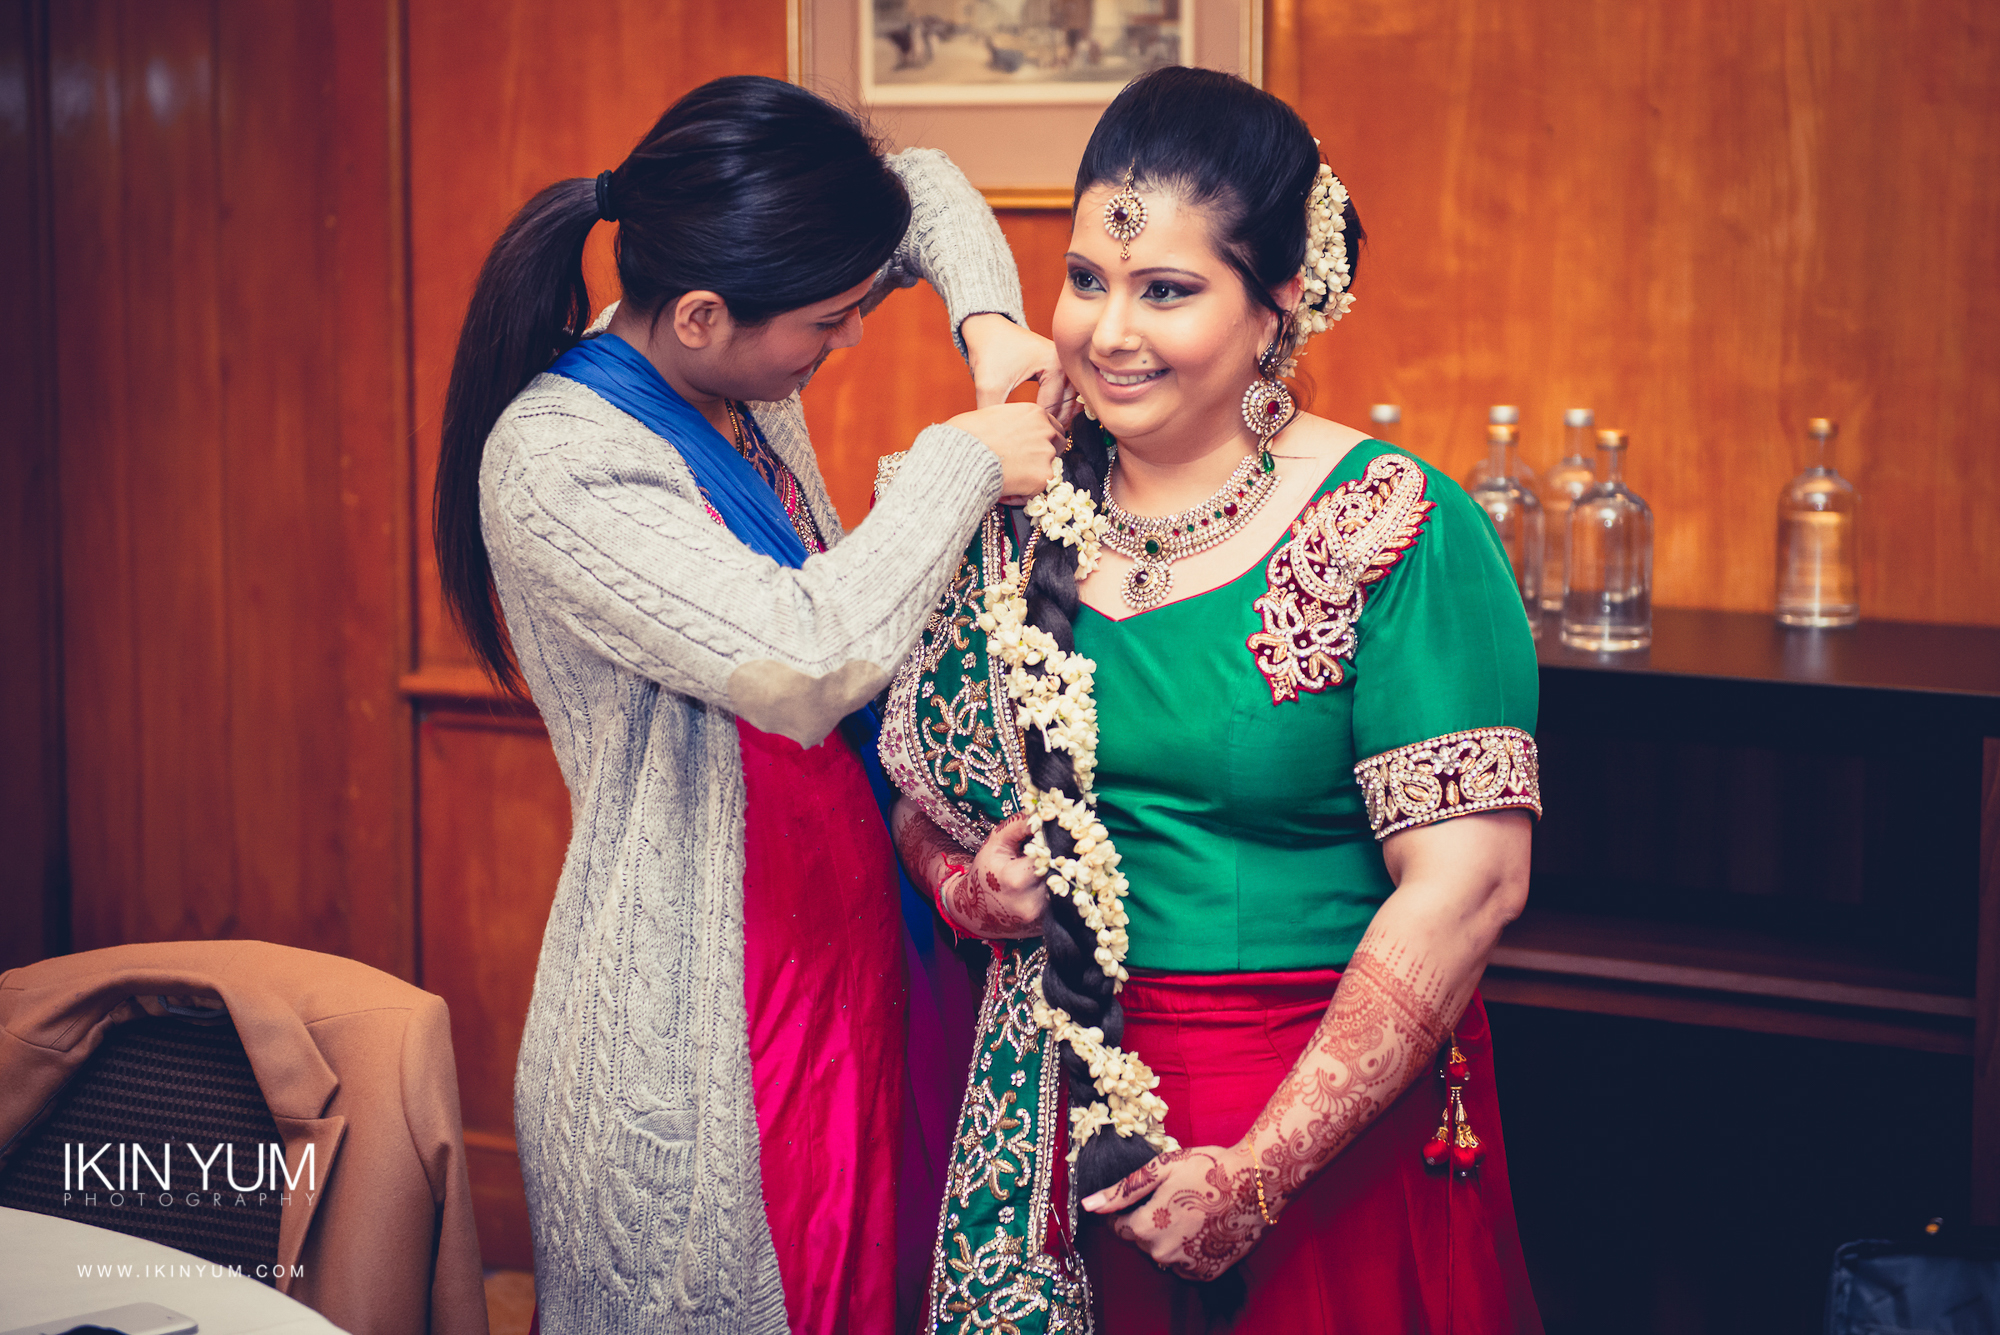 Grand Connaught Rooms Wedding - Minal & Raj - Ikin Yum Photography-030.jpg